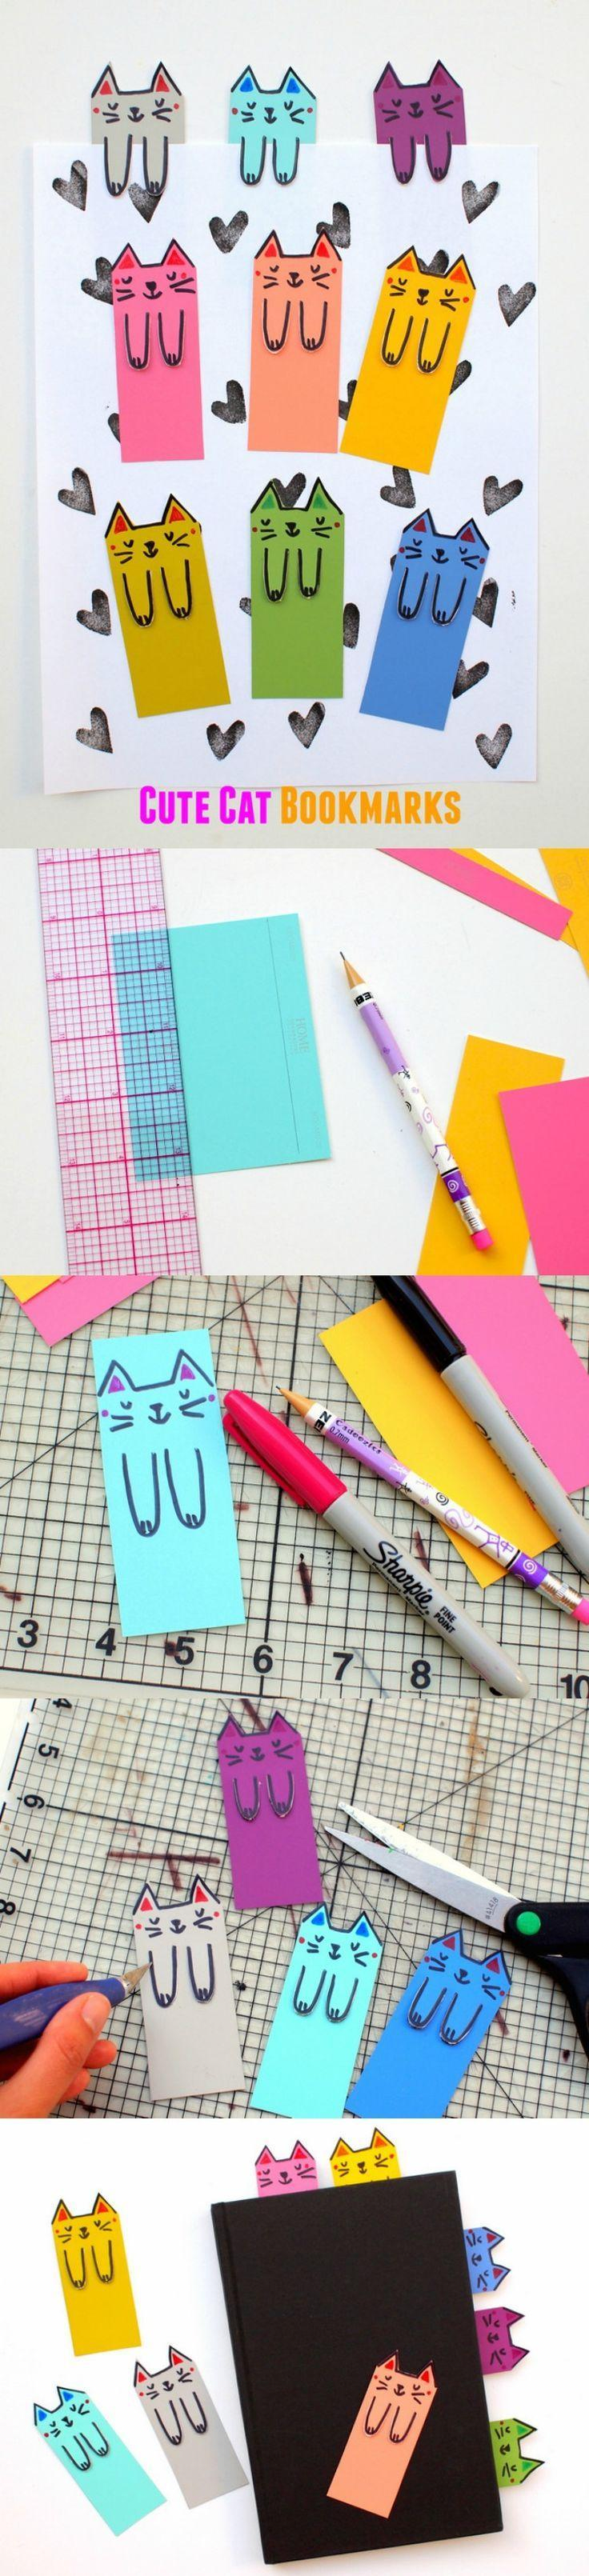 5 Easy Ideas to DIY Bookmarks